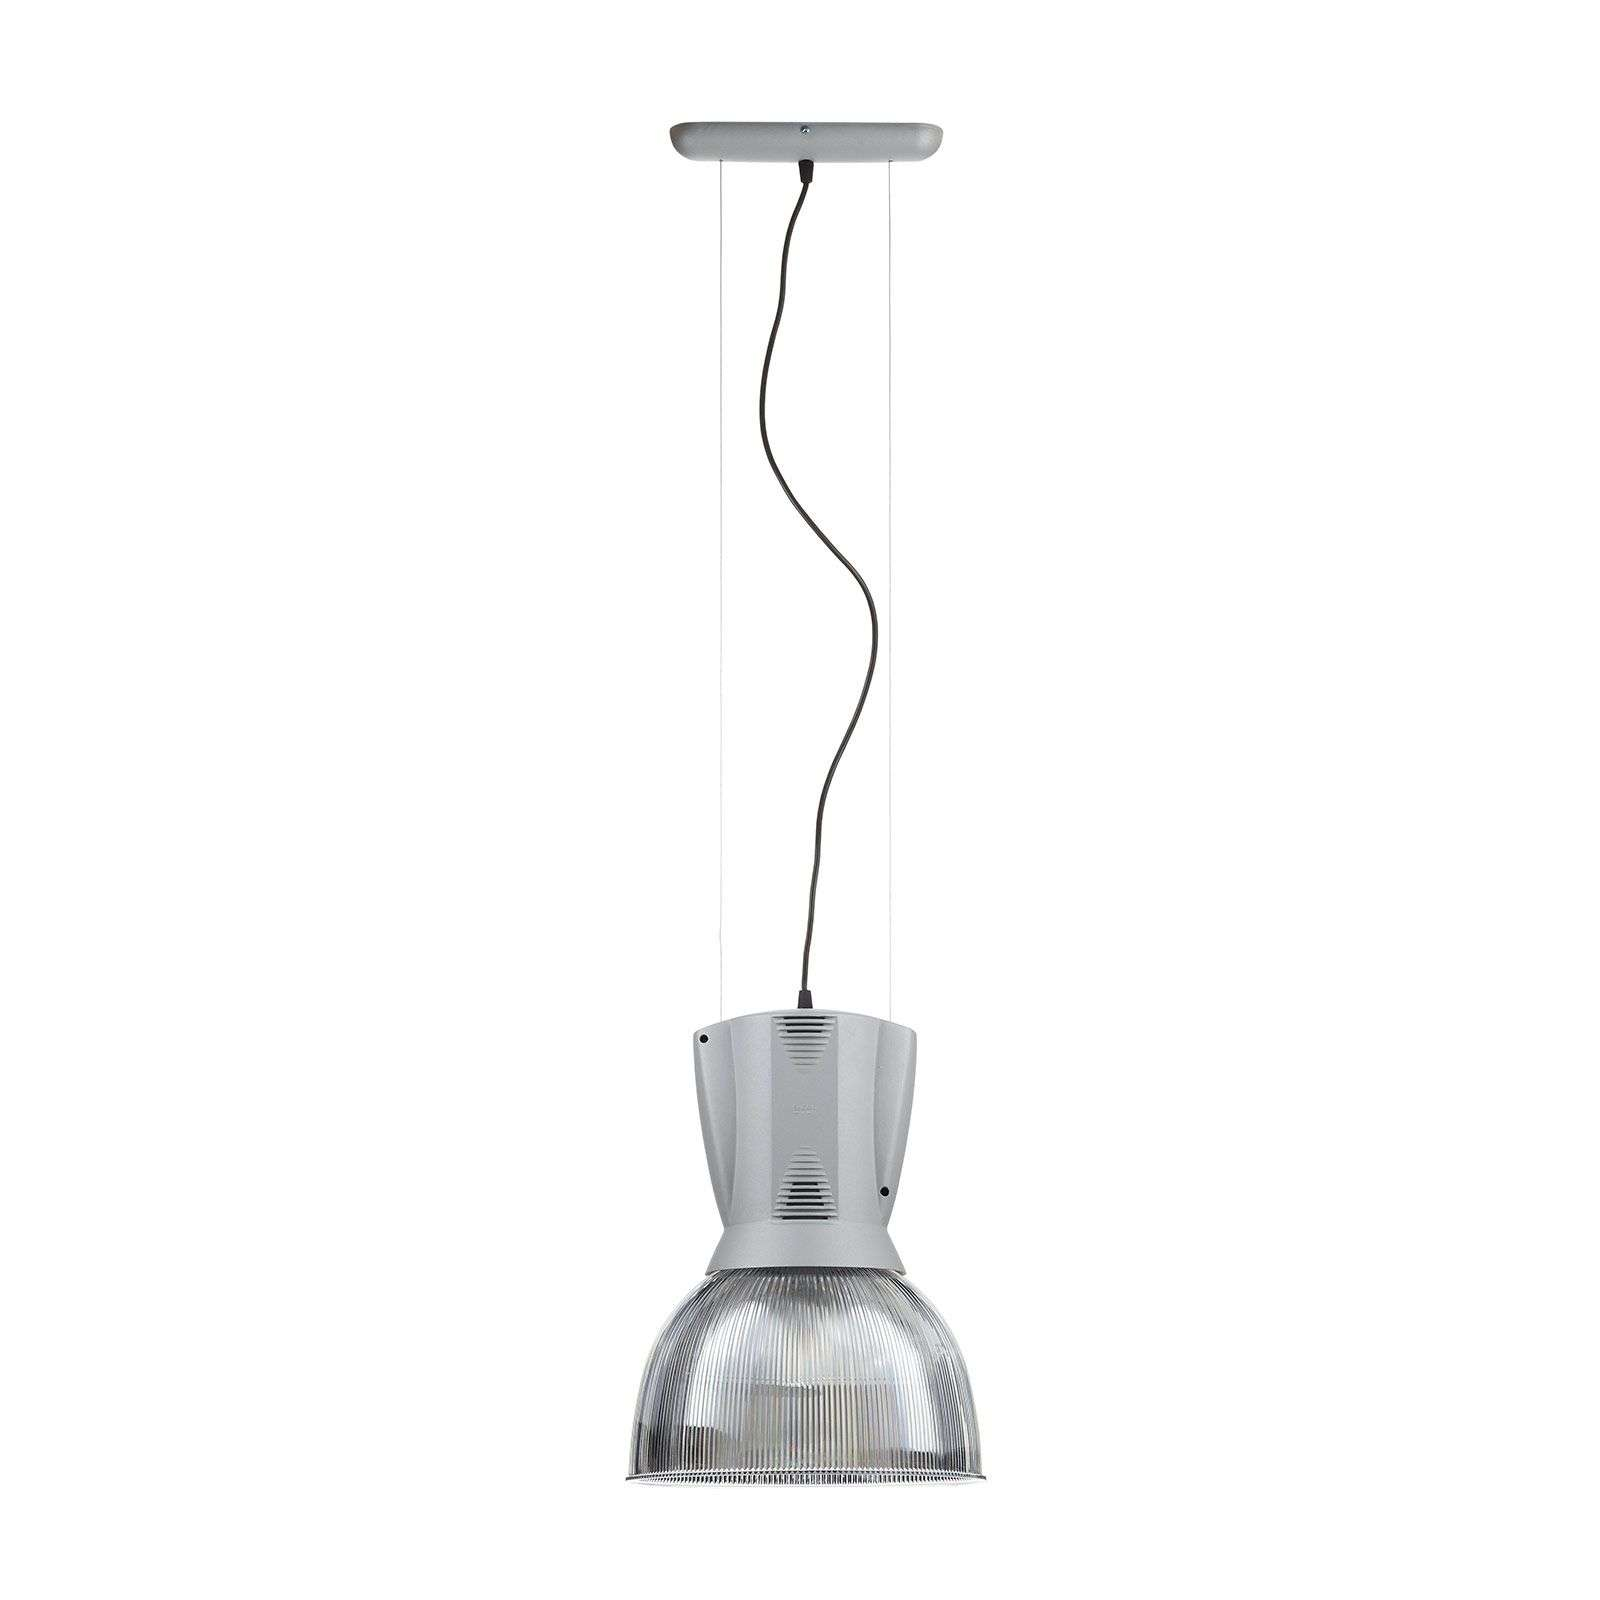 Suspension argentée mate ICE 150 W